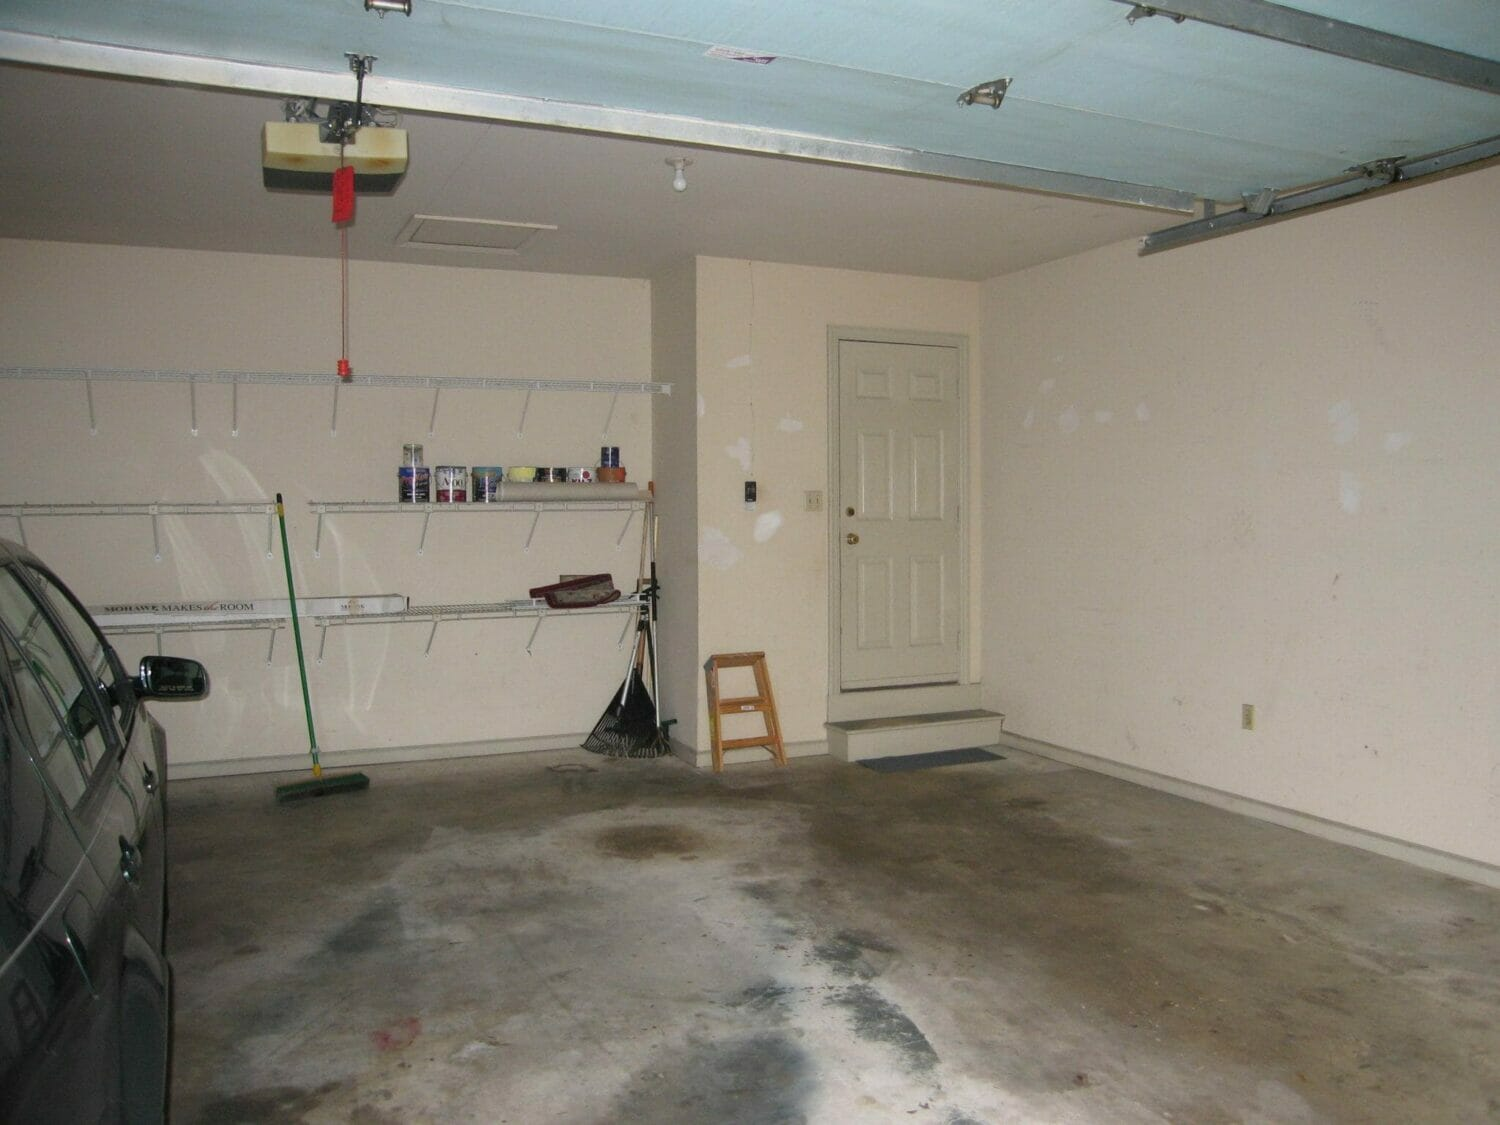 It's easy to organize your garage when it's empty!